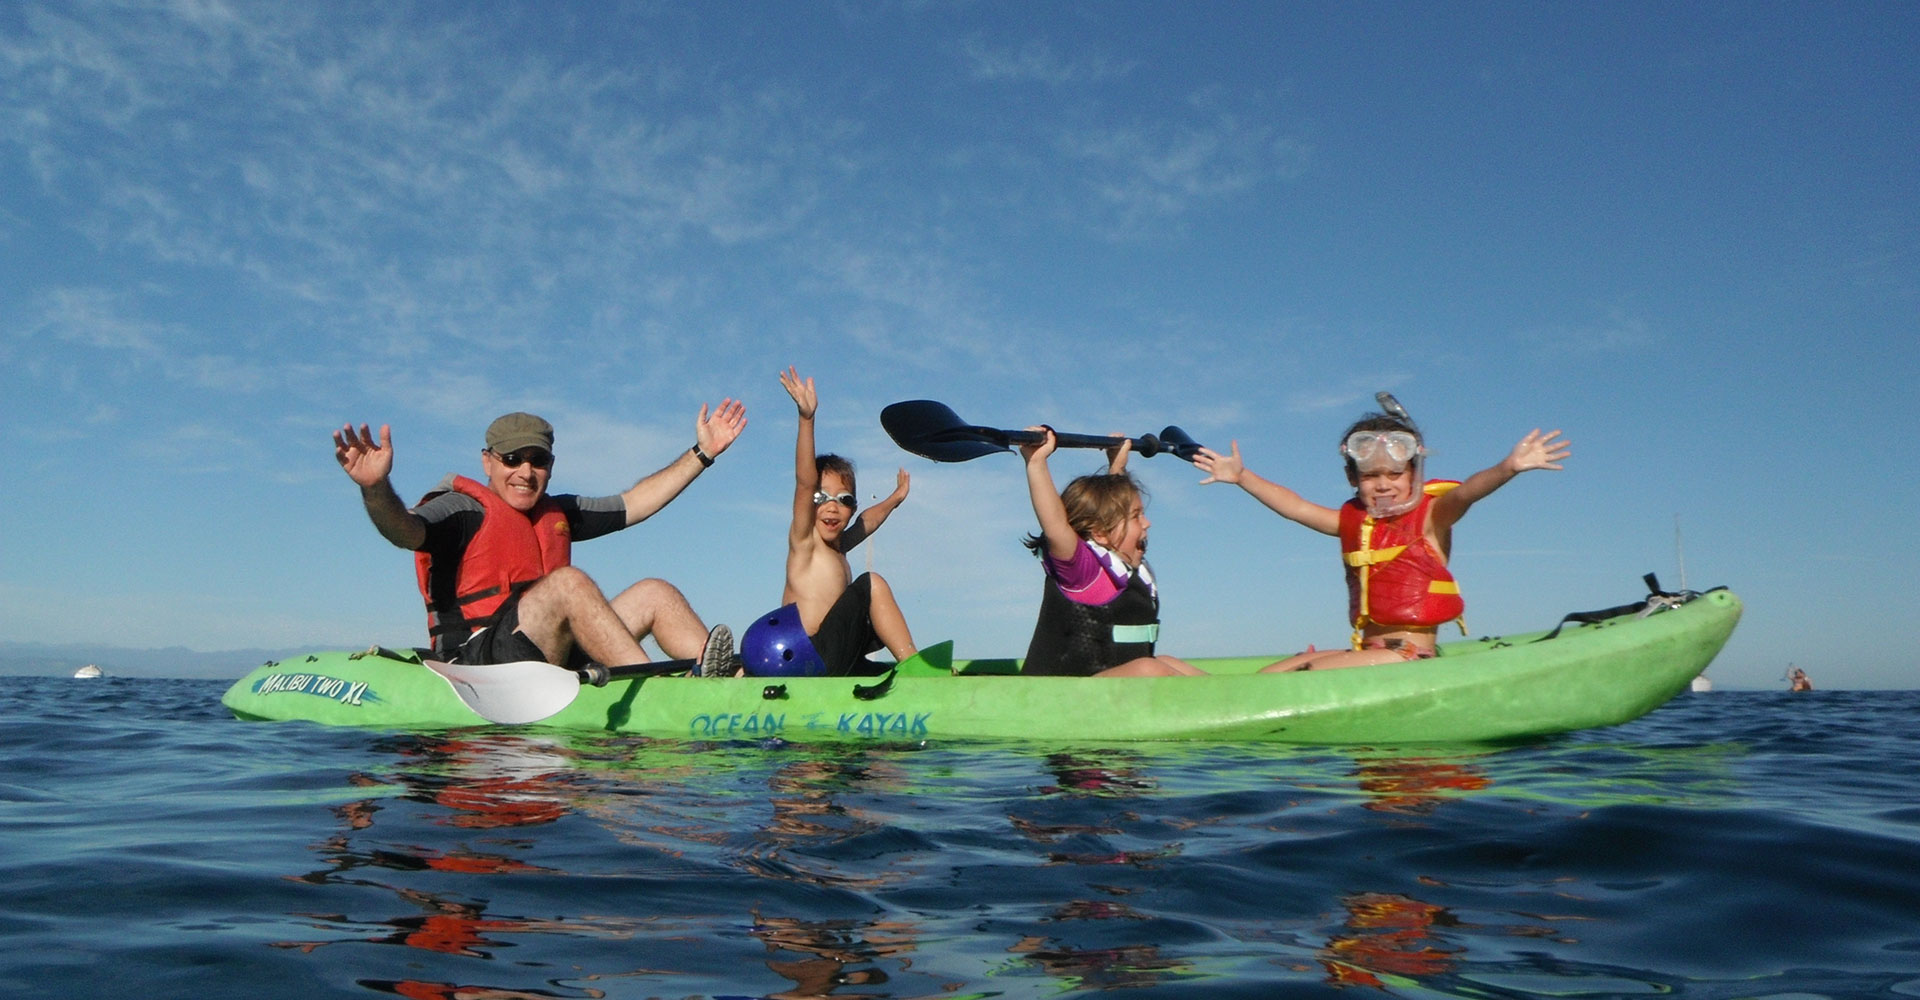 kids and an adult in a kayak